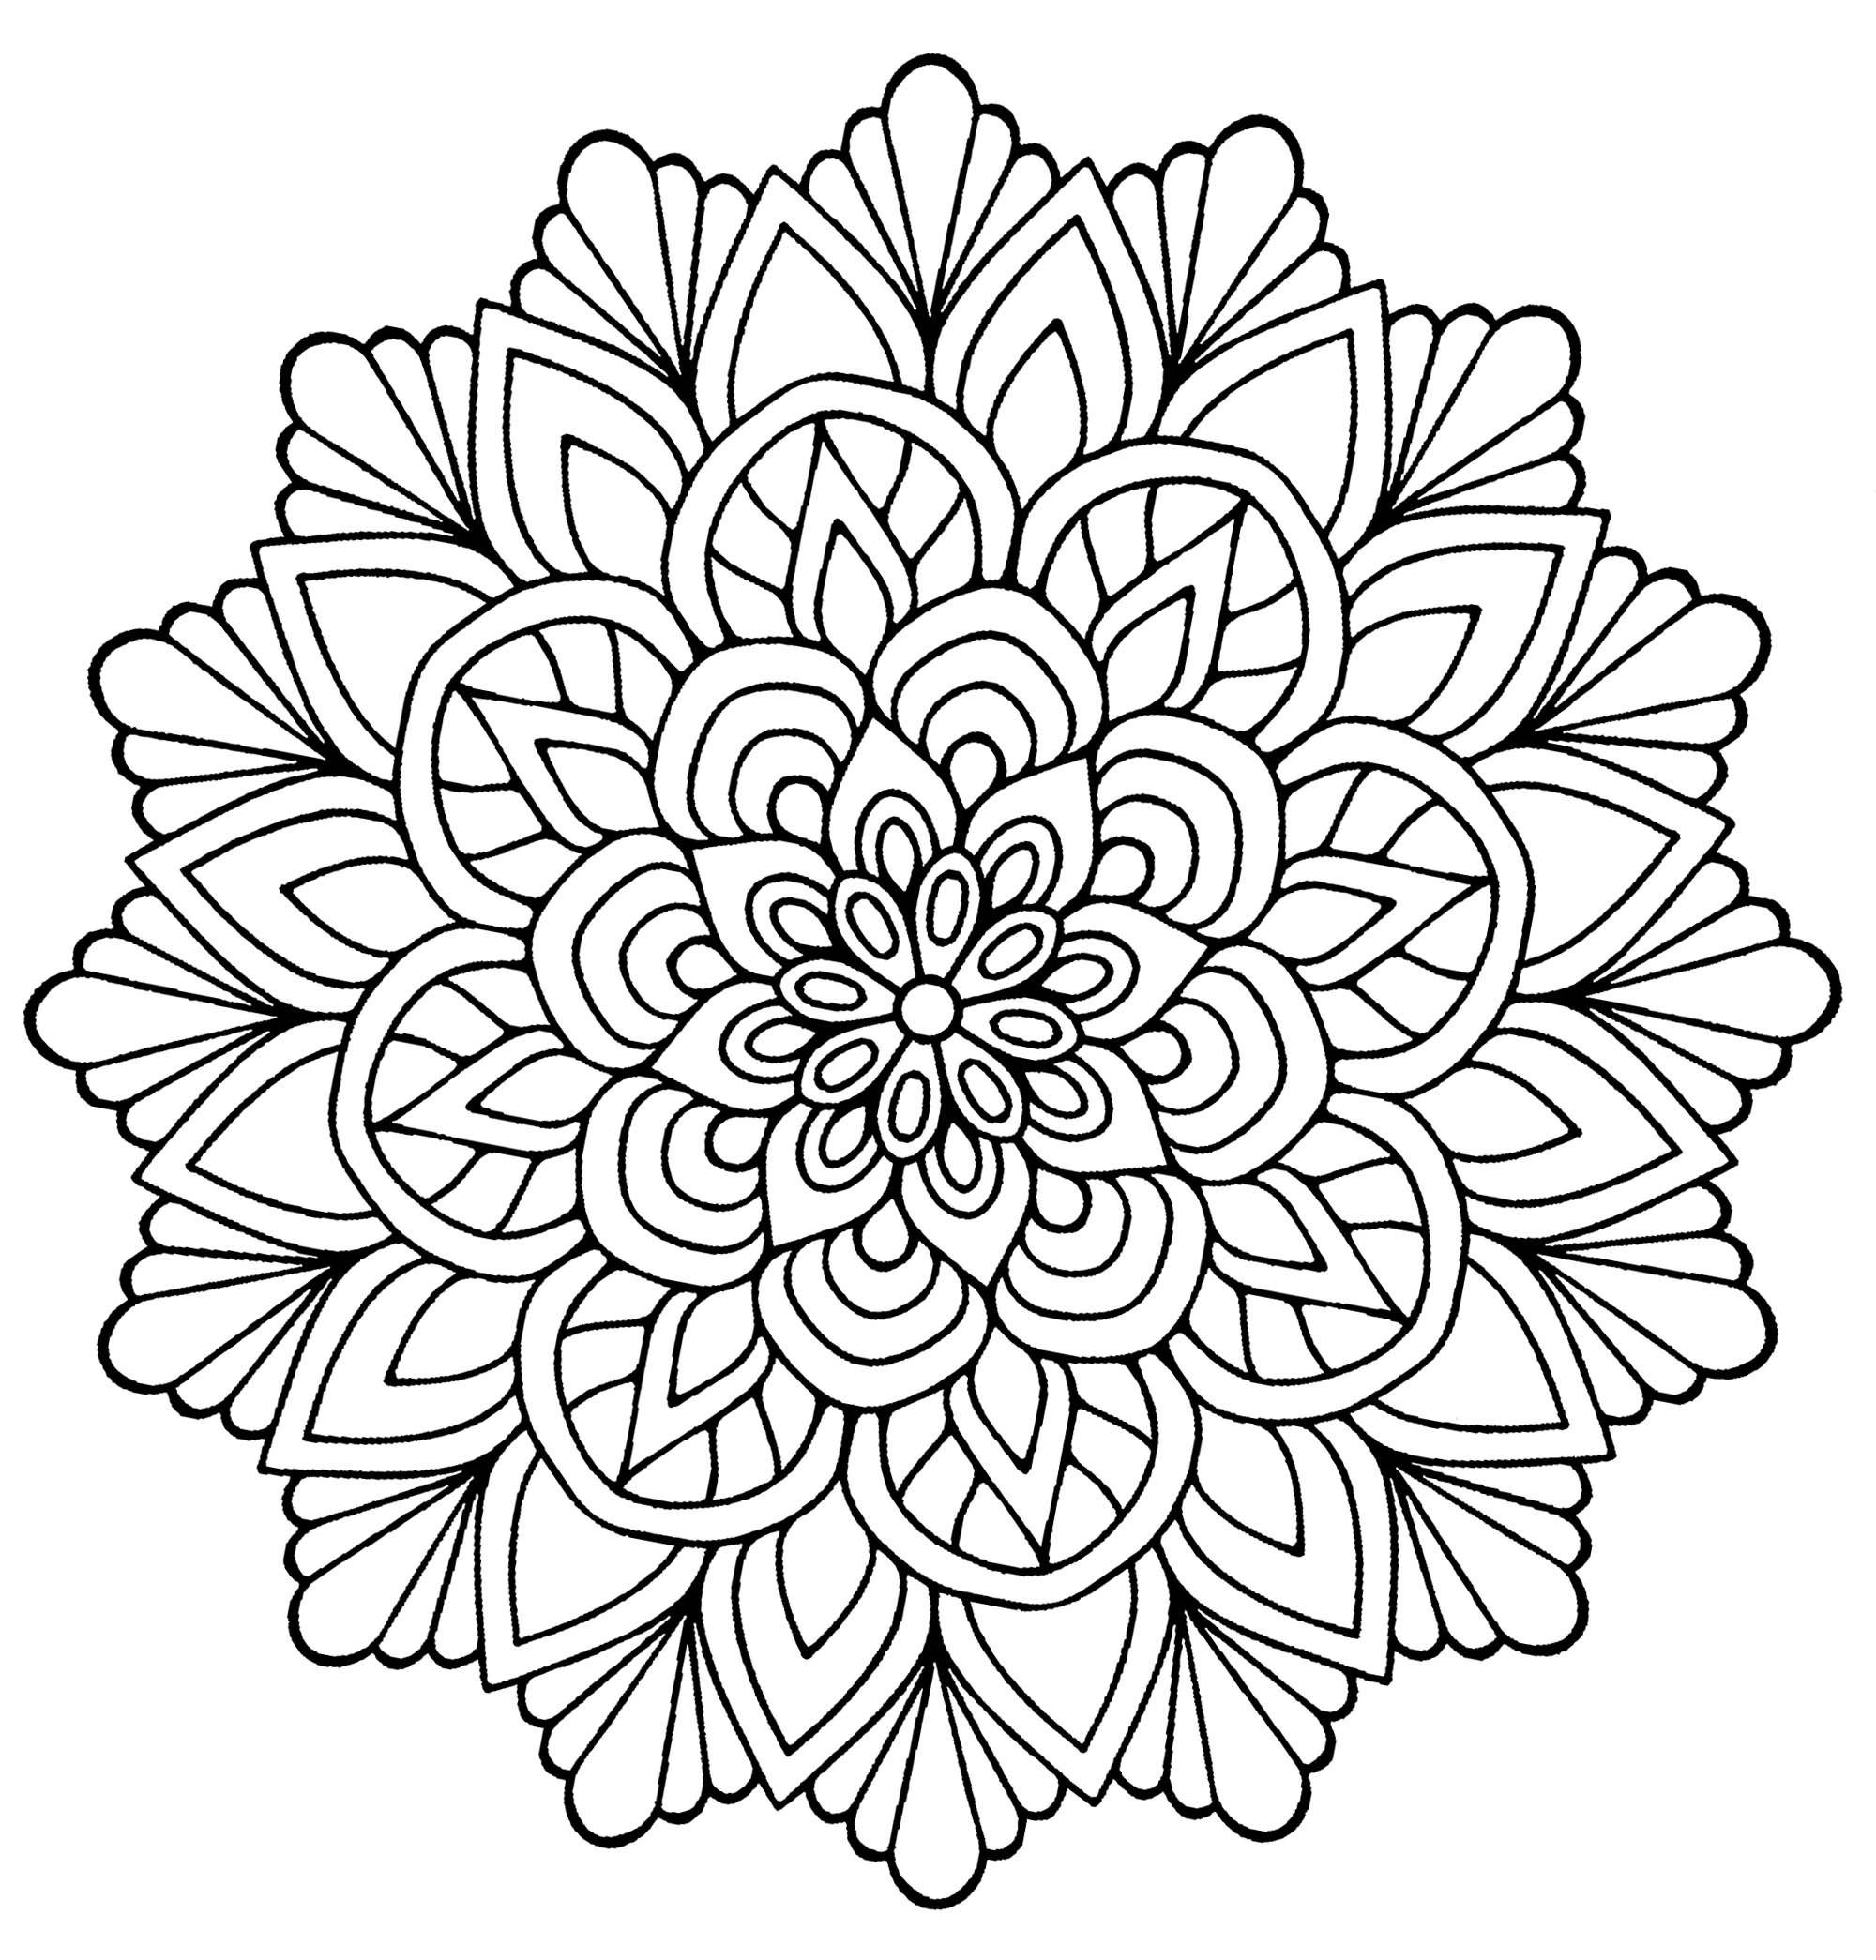 simple mandalas to color simple mandala coloring pages download and print for free to simple mandalas color